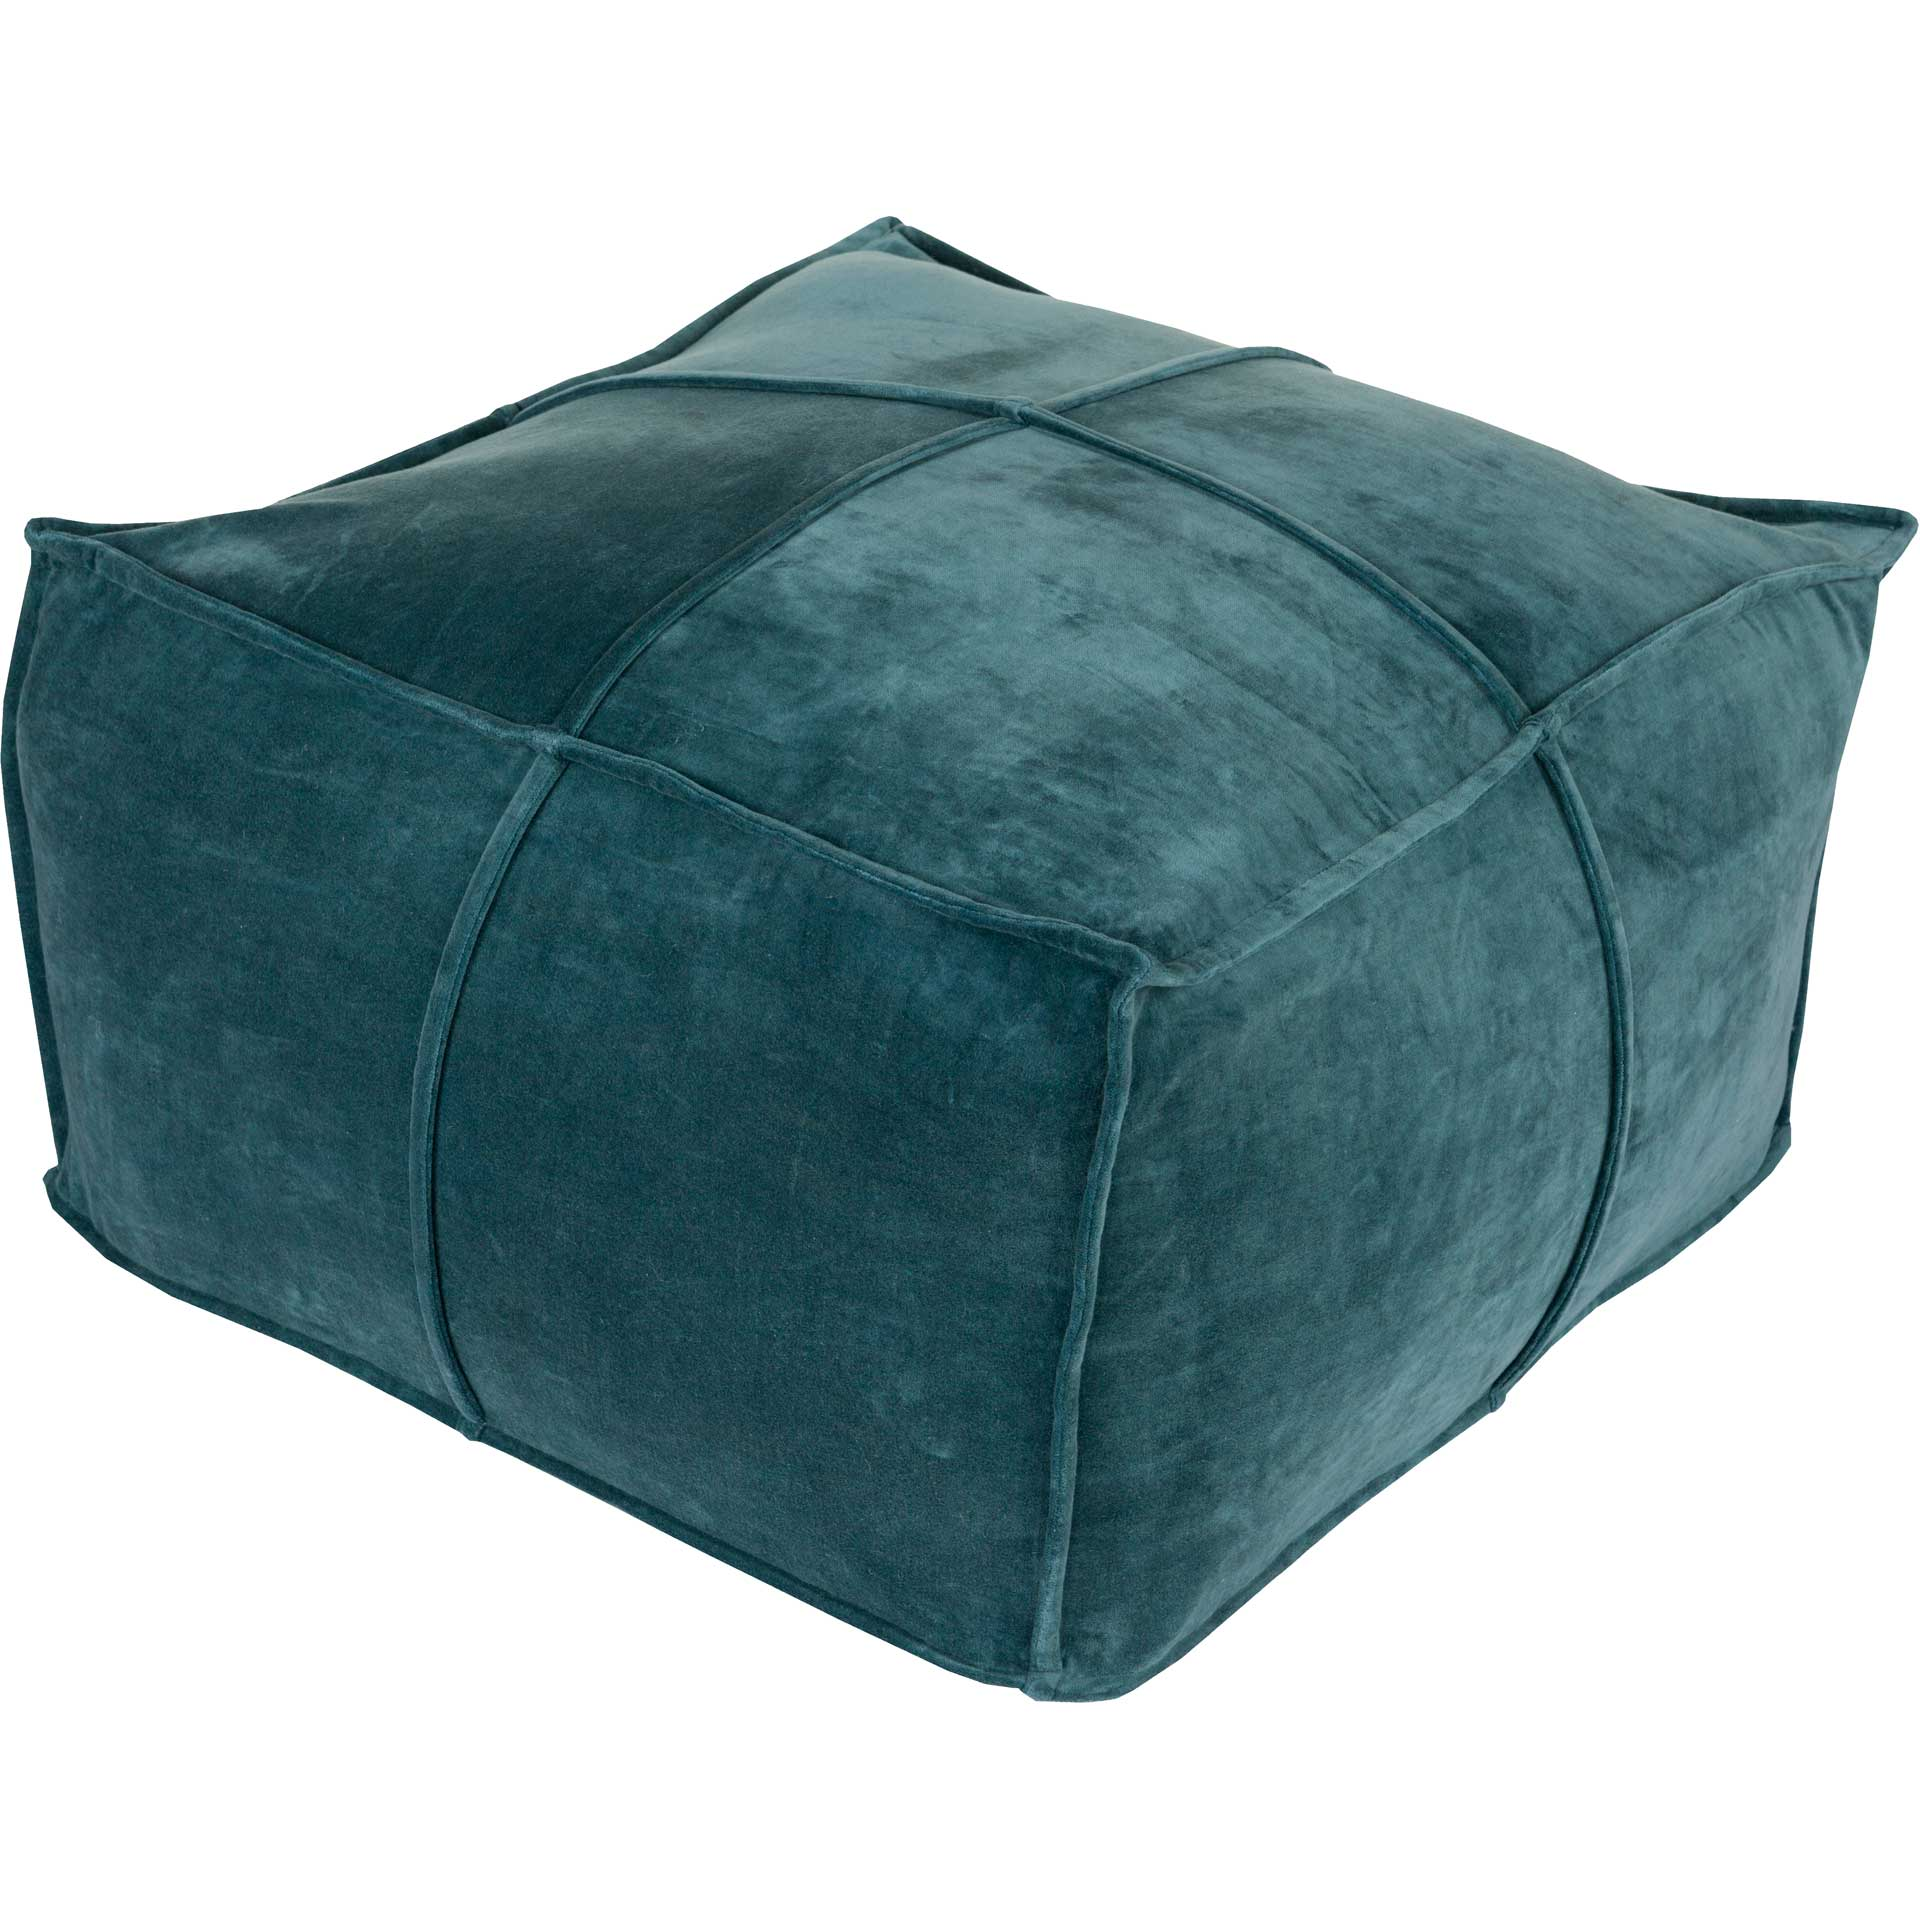 Conner Pouf Teal